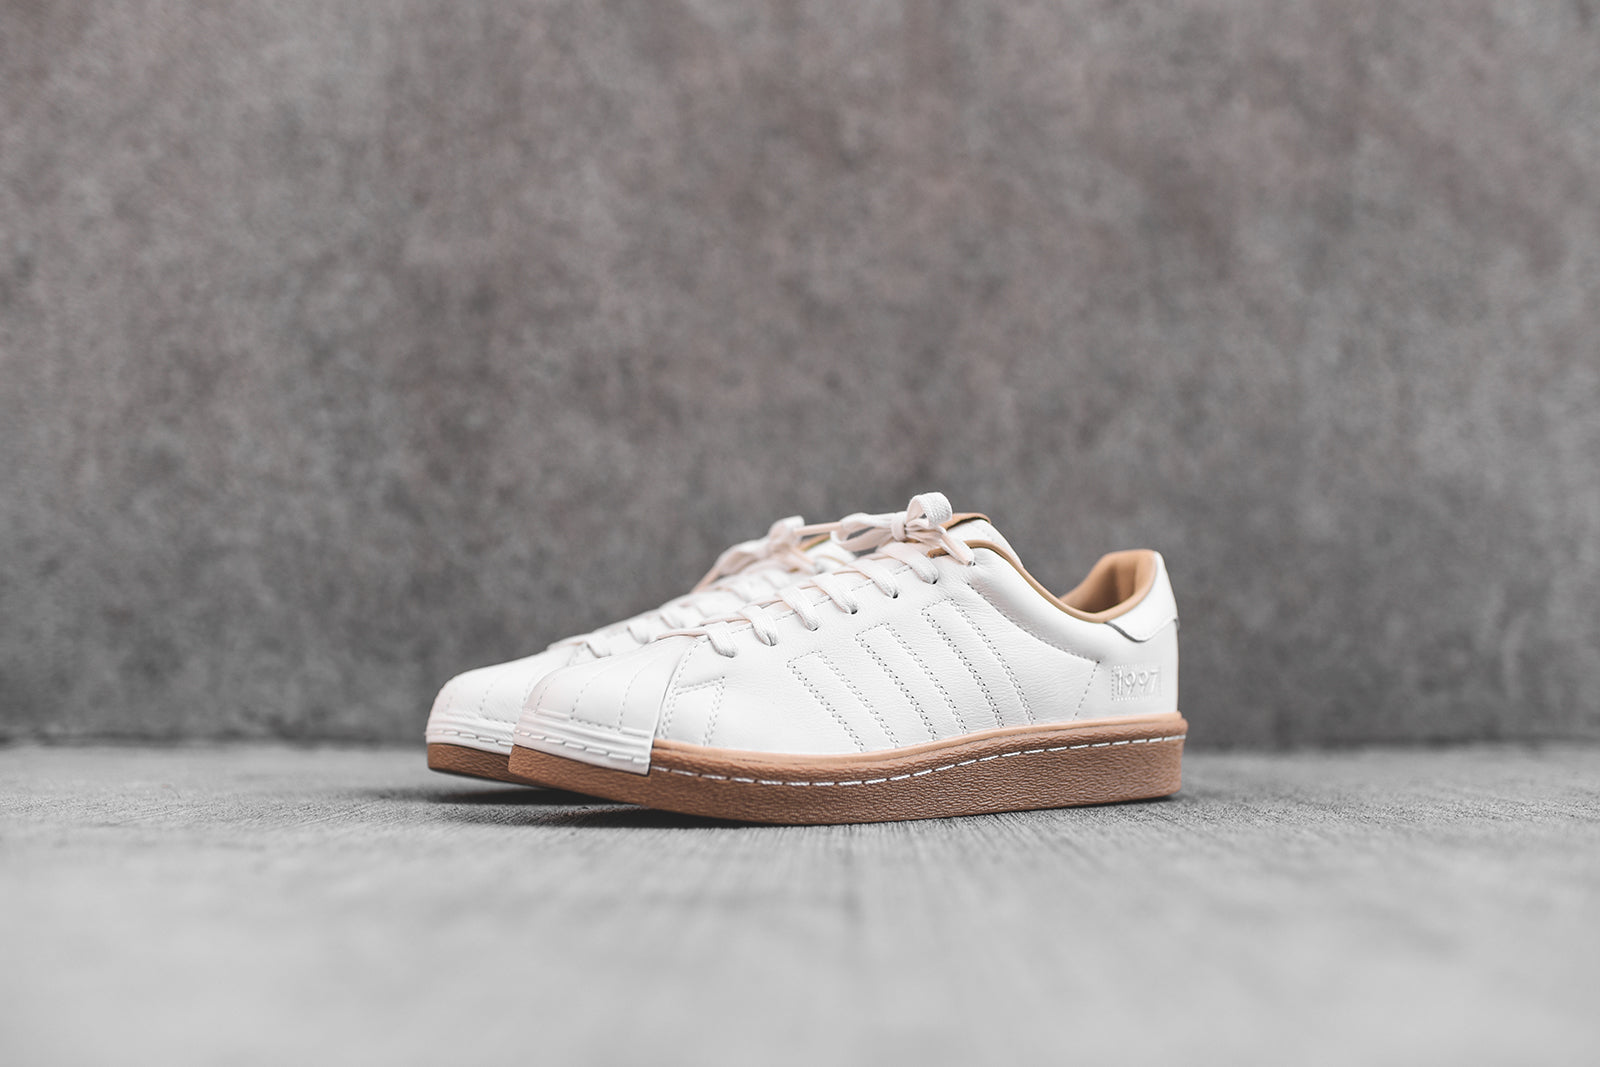 8d3eecc430 Superstar Shoes BOOST and Bounce Soles Cheap Adidas US